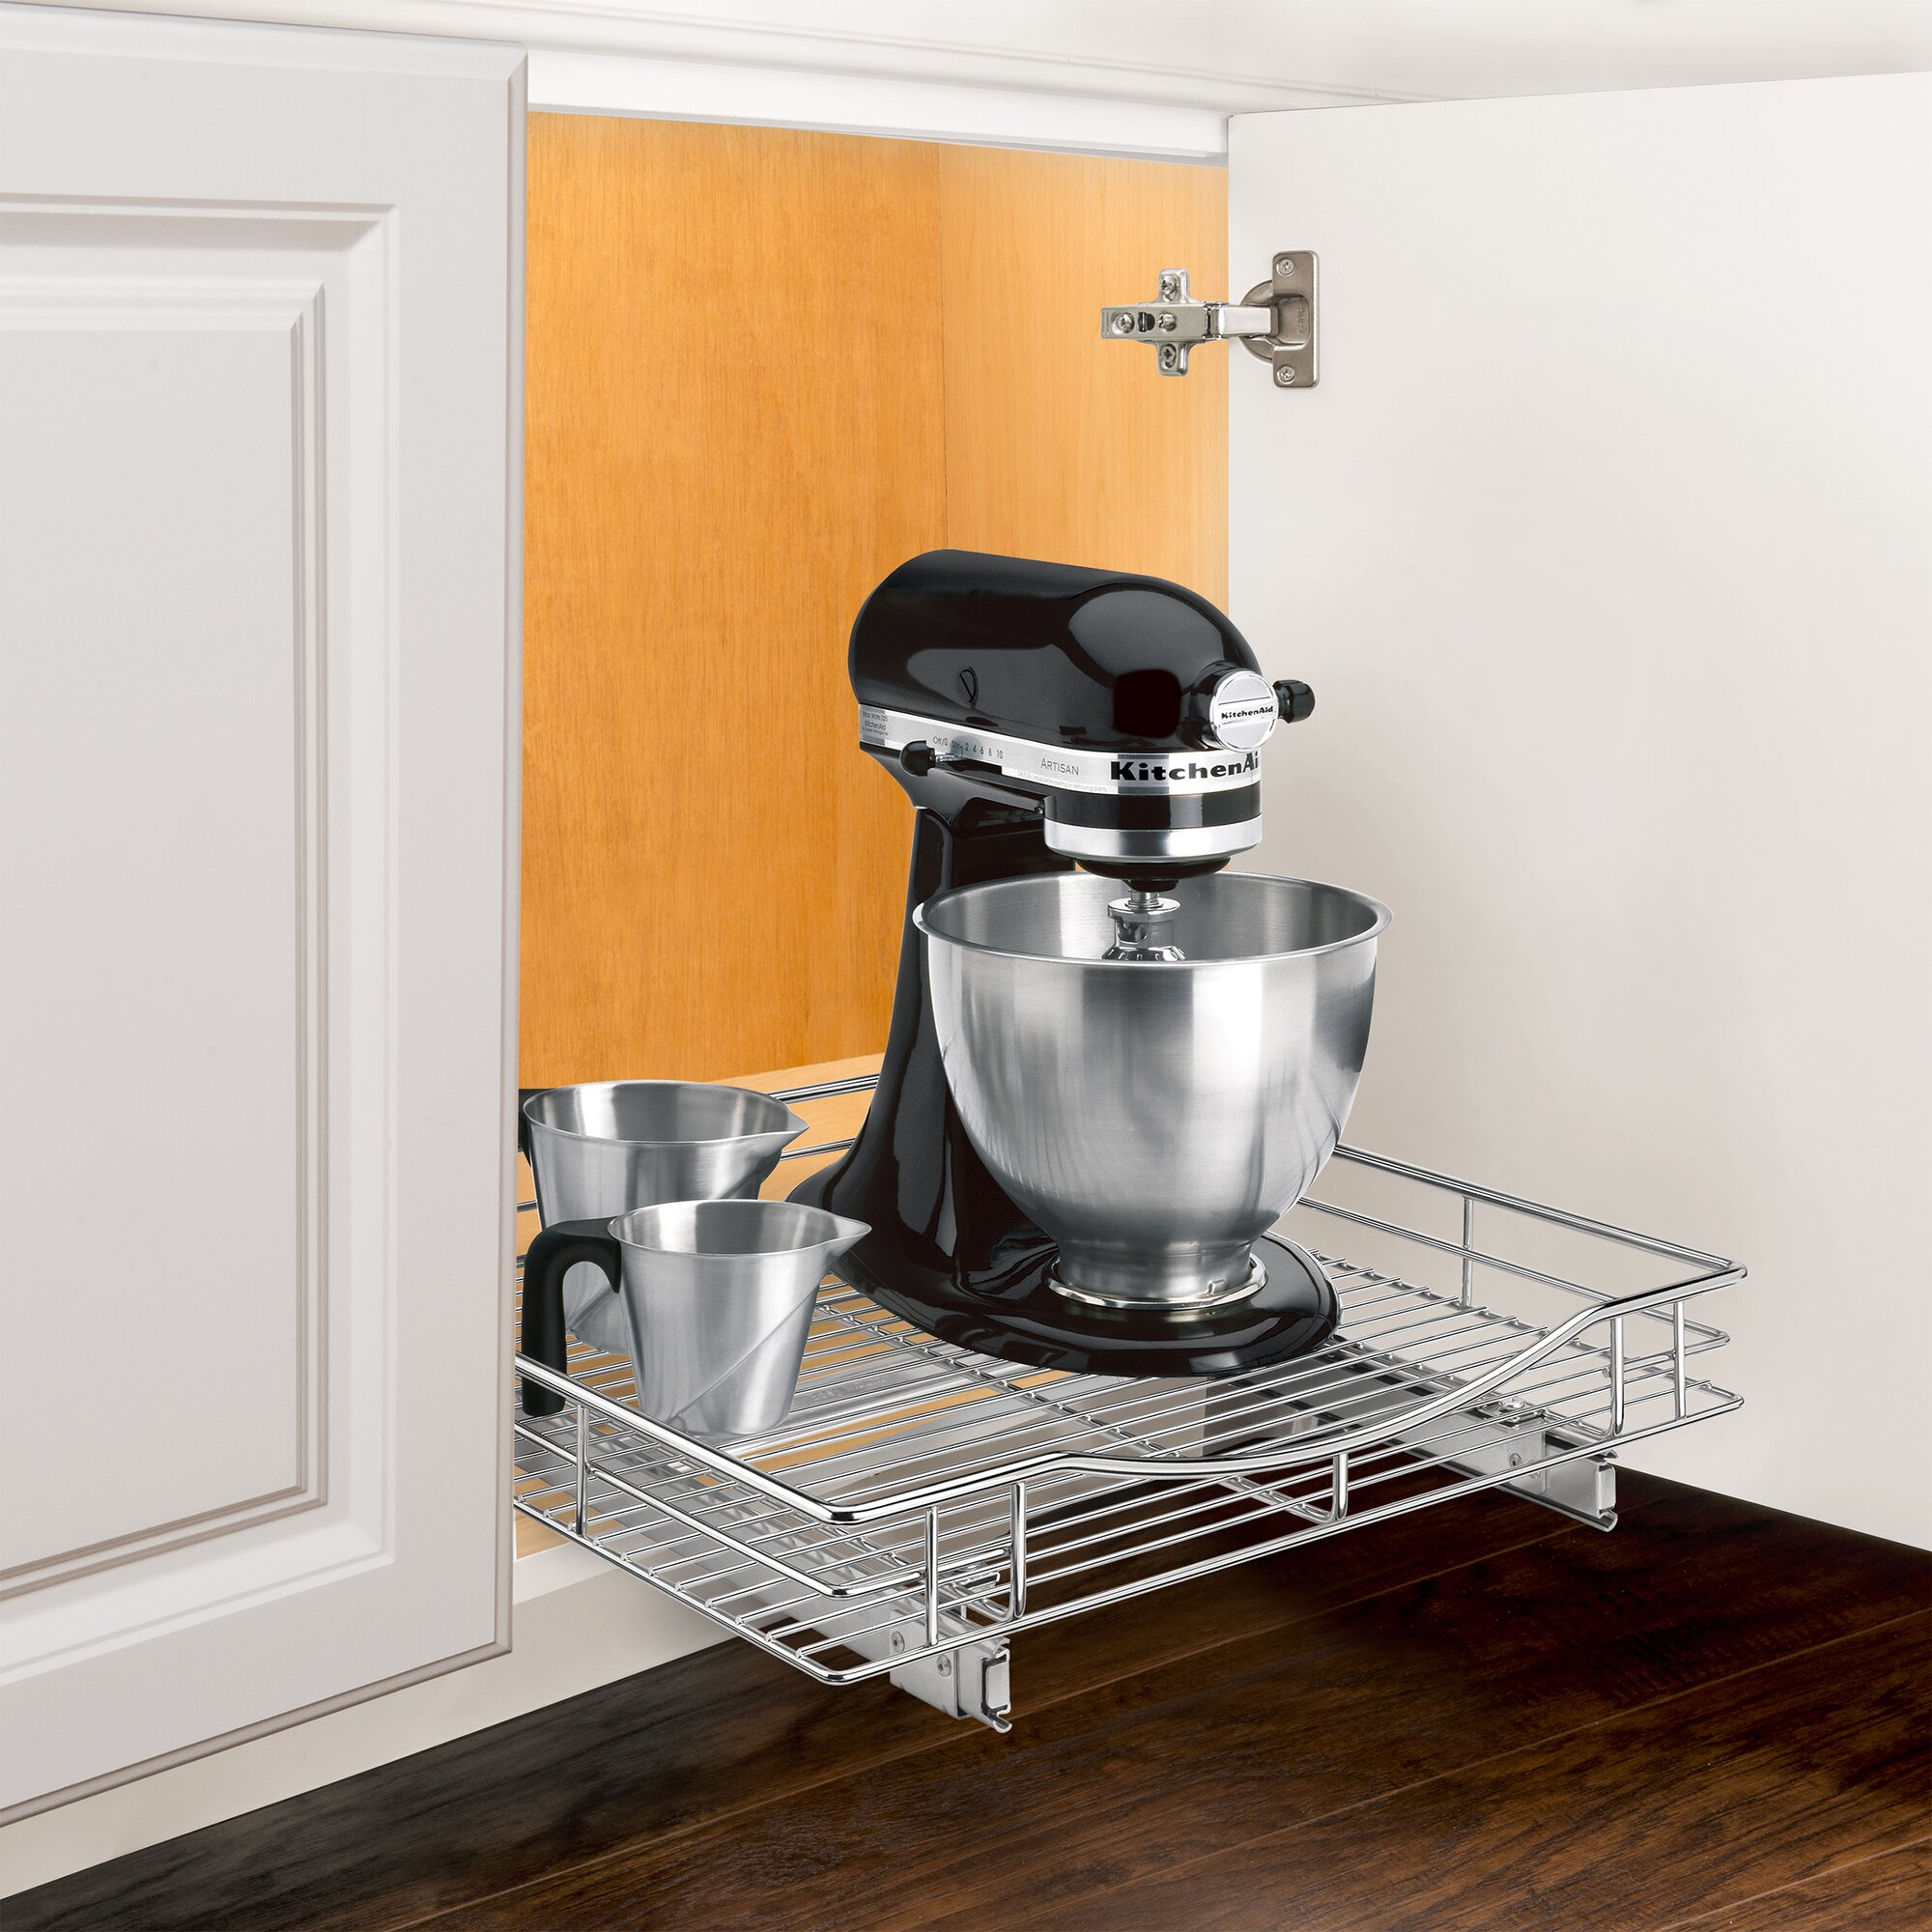 Under Cabinet Drawers: Lynk Roll Out Cabinet Organizer